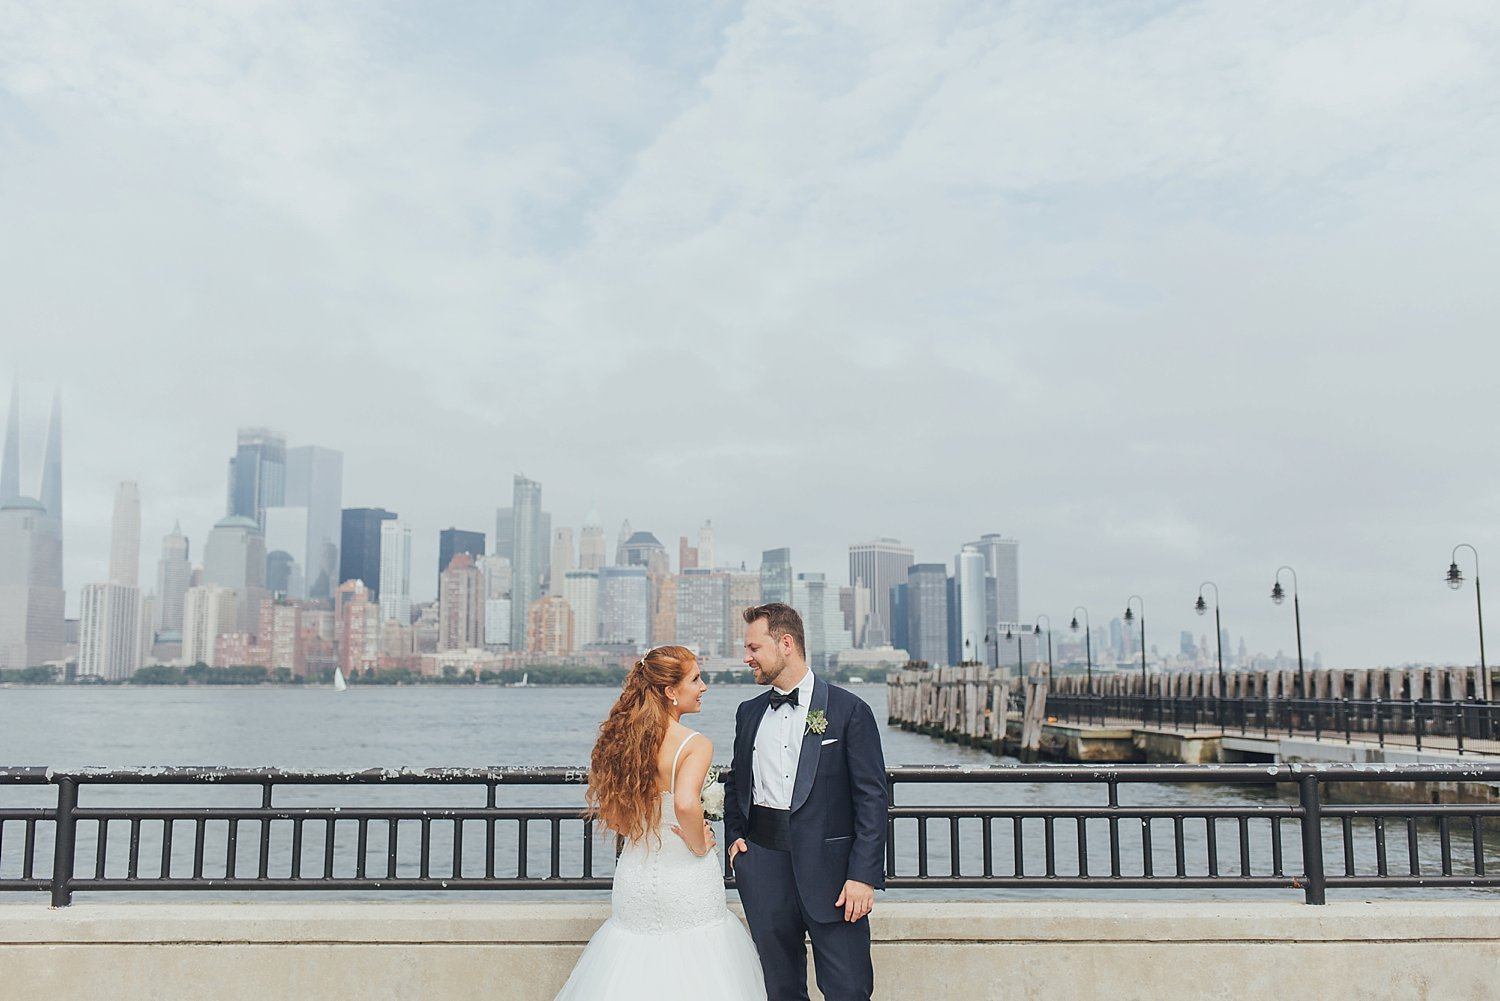 nyc-wedding-photography-nj-tri-state-cinematography-intothestory-by-moo-jae_0299.jpg